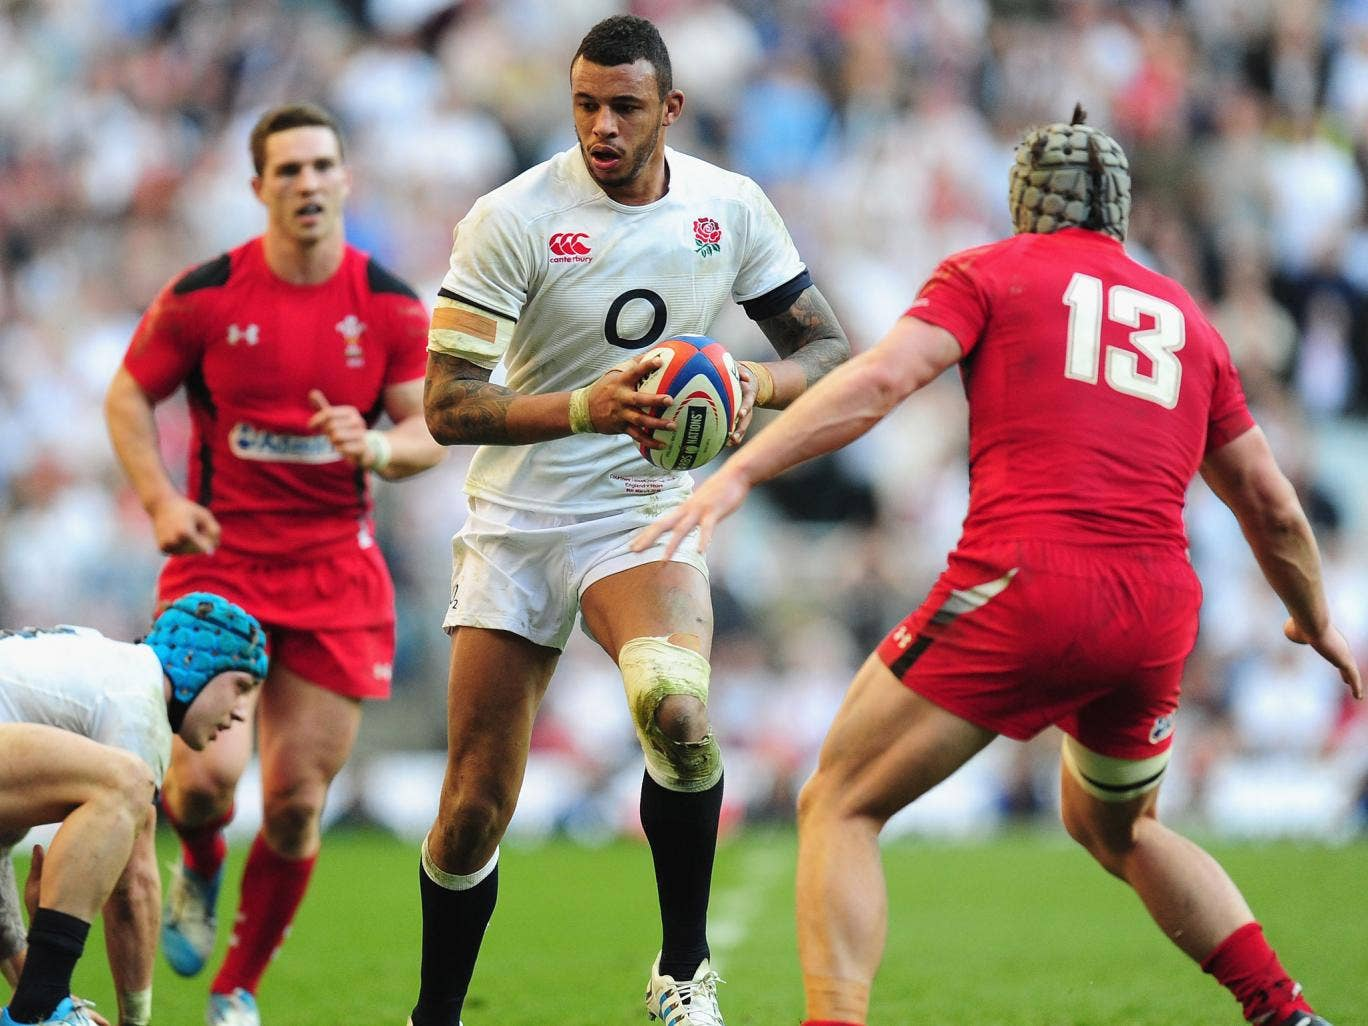 England's Courtney Lawes charges forward